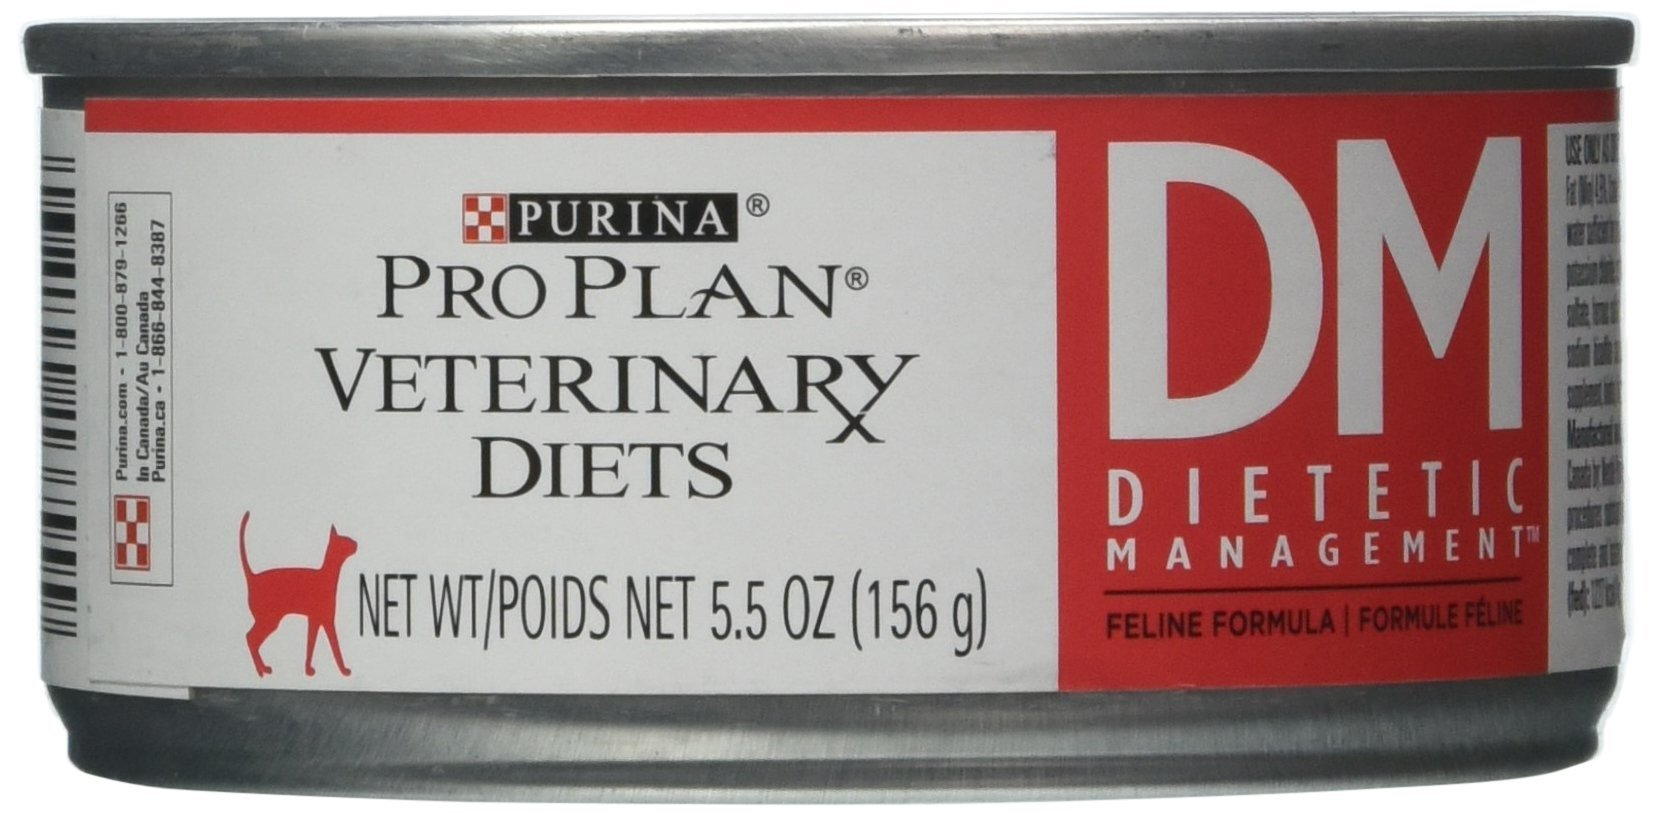 Purina Veterinary Diets DM Dietetic Management for Cats 24/5.5oz cans by Purina Waggin' Train